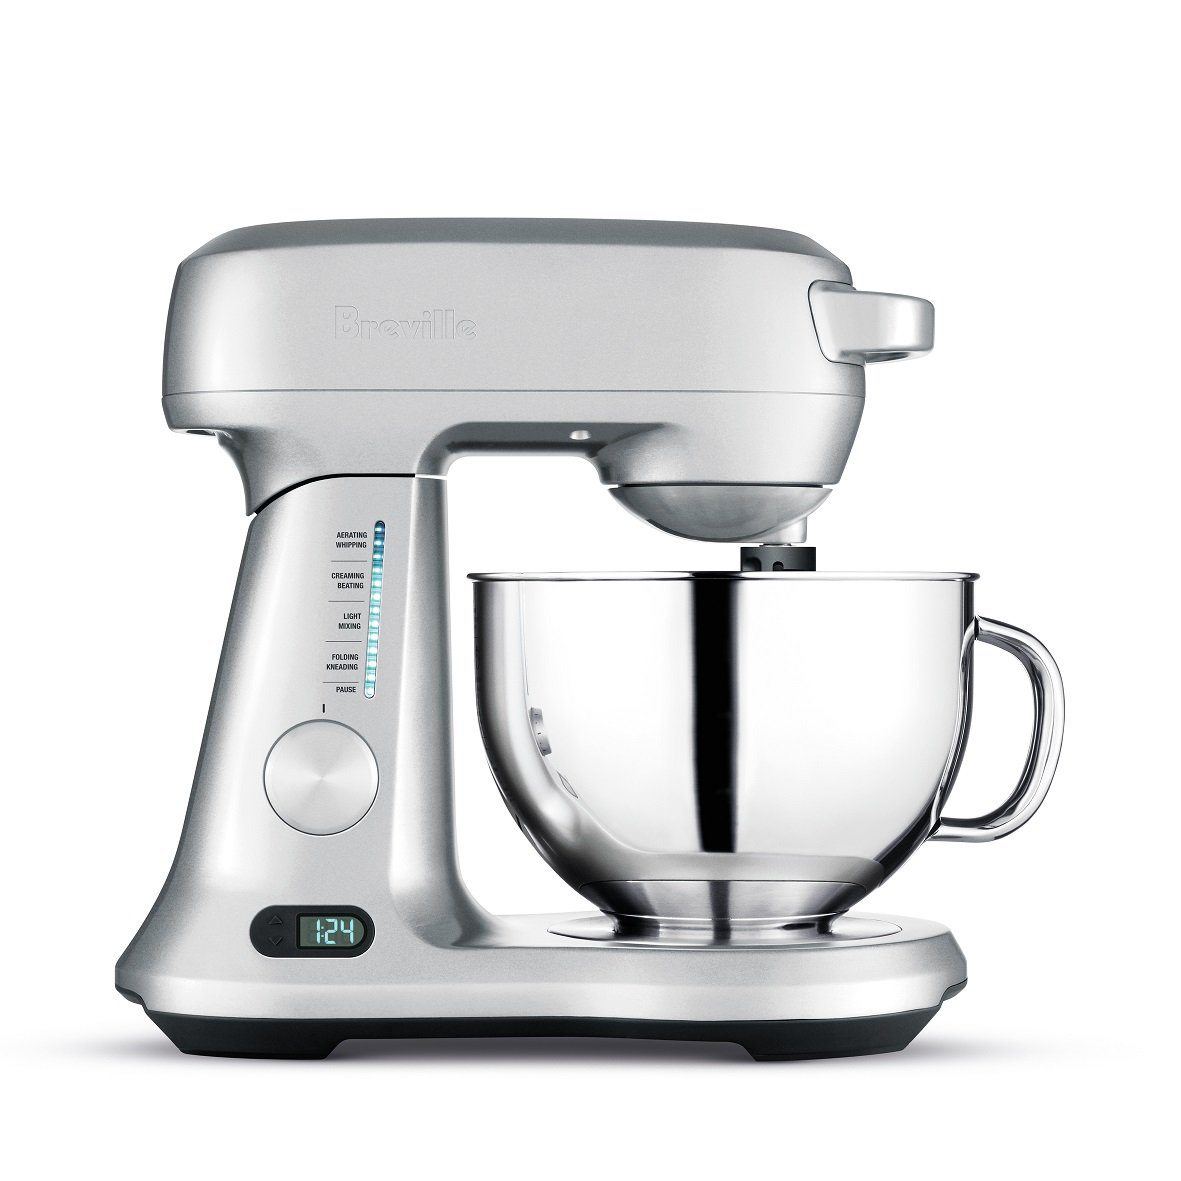 Top 8 Best Stand Mixers Reviews in 2020 You Can Consider 8